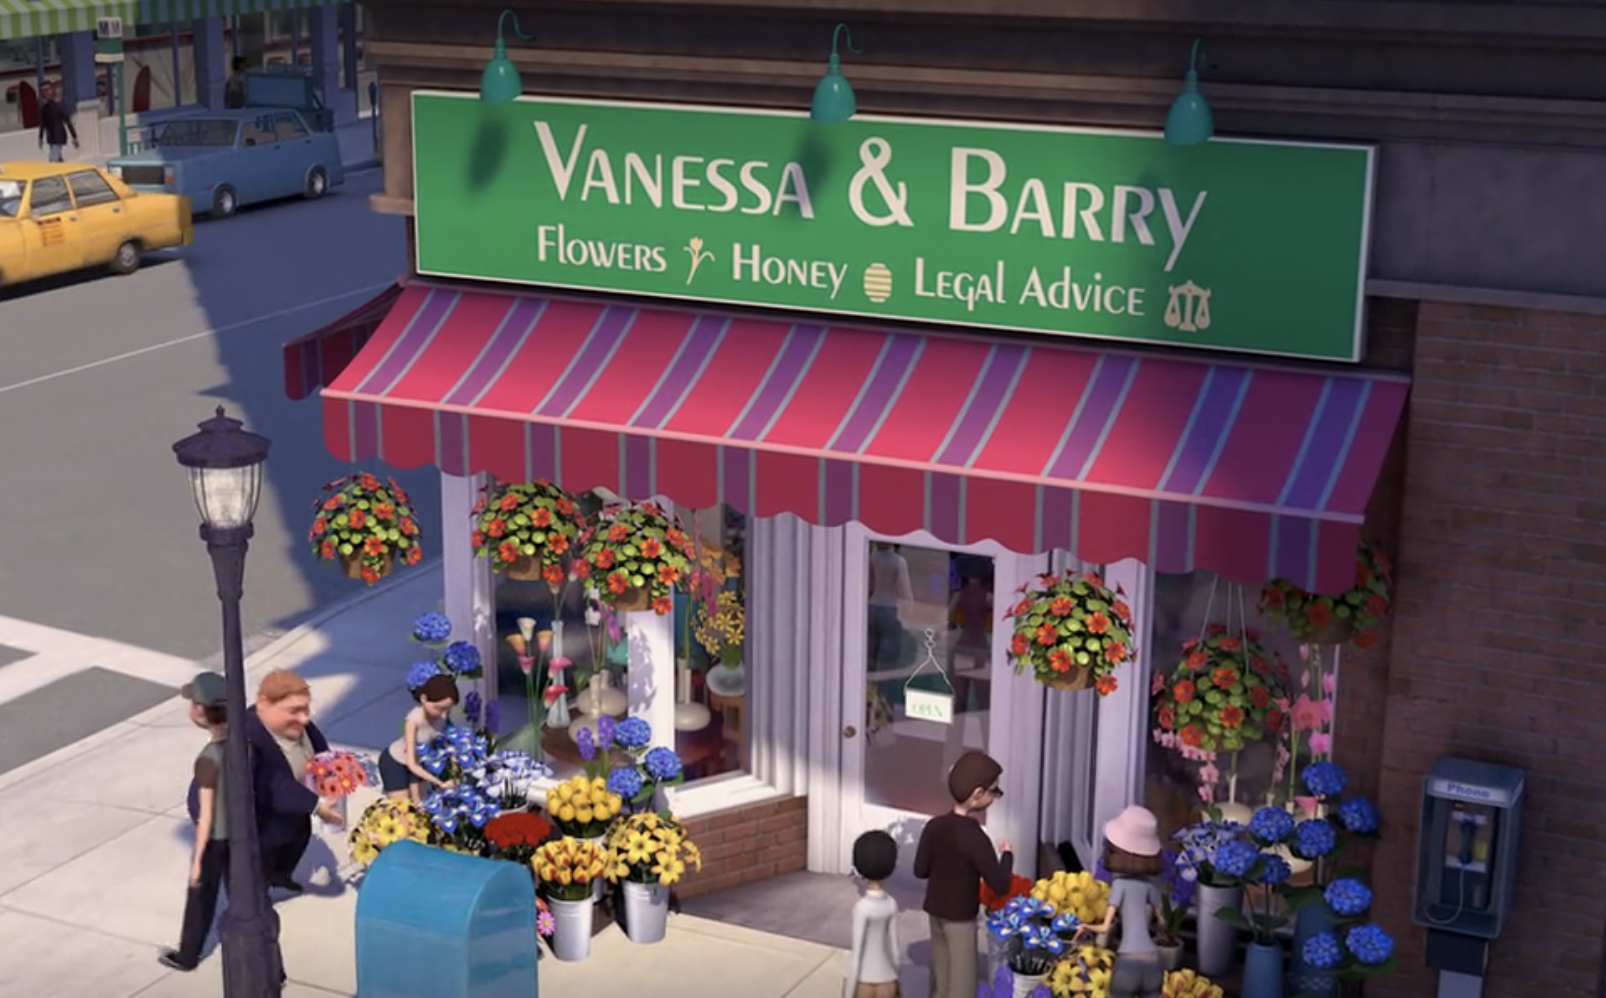 """Vanessa's flower shop, now with the sign """"Vanessa and Barry, flowers, honey, and legal advice"""""""